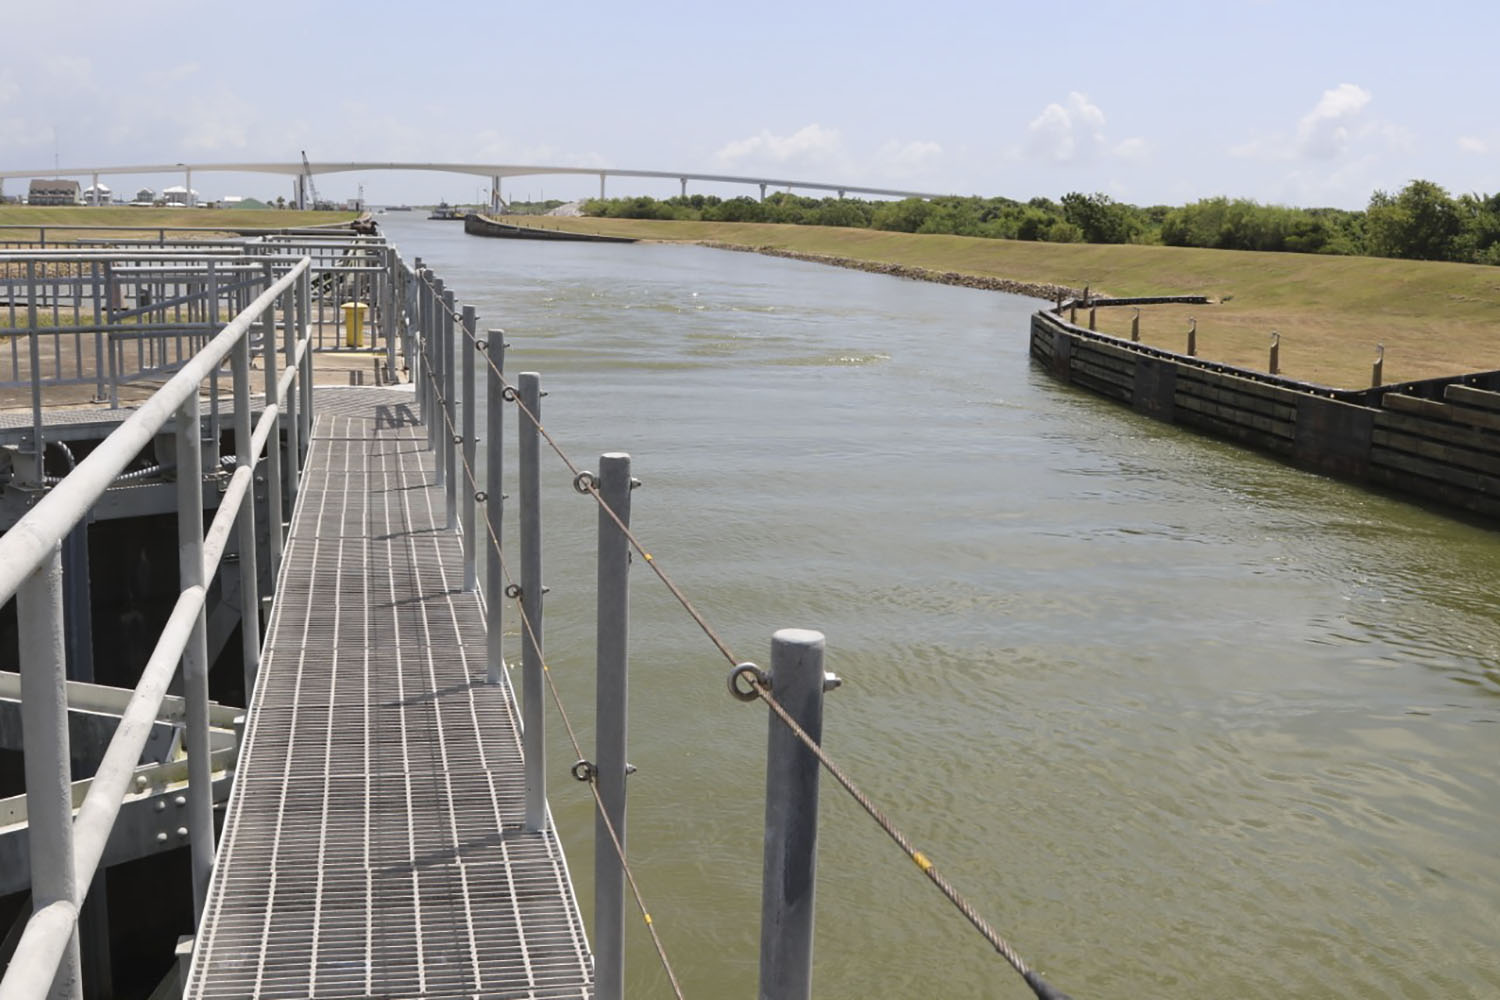 Summertime photo of Colorado River Locks (Photo courtesy of Galveston Engineer District)